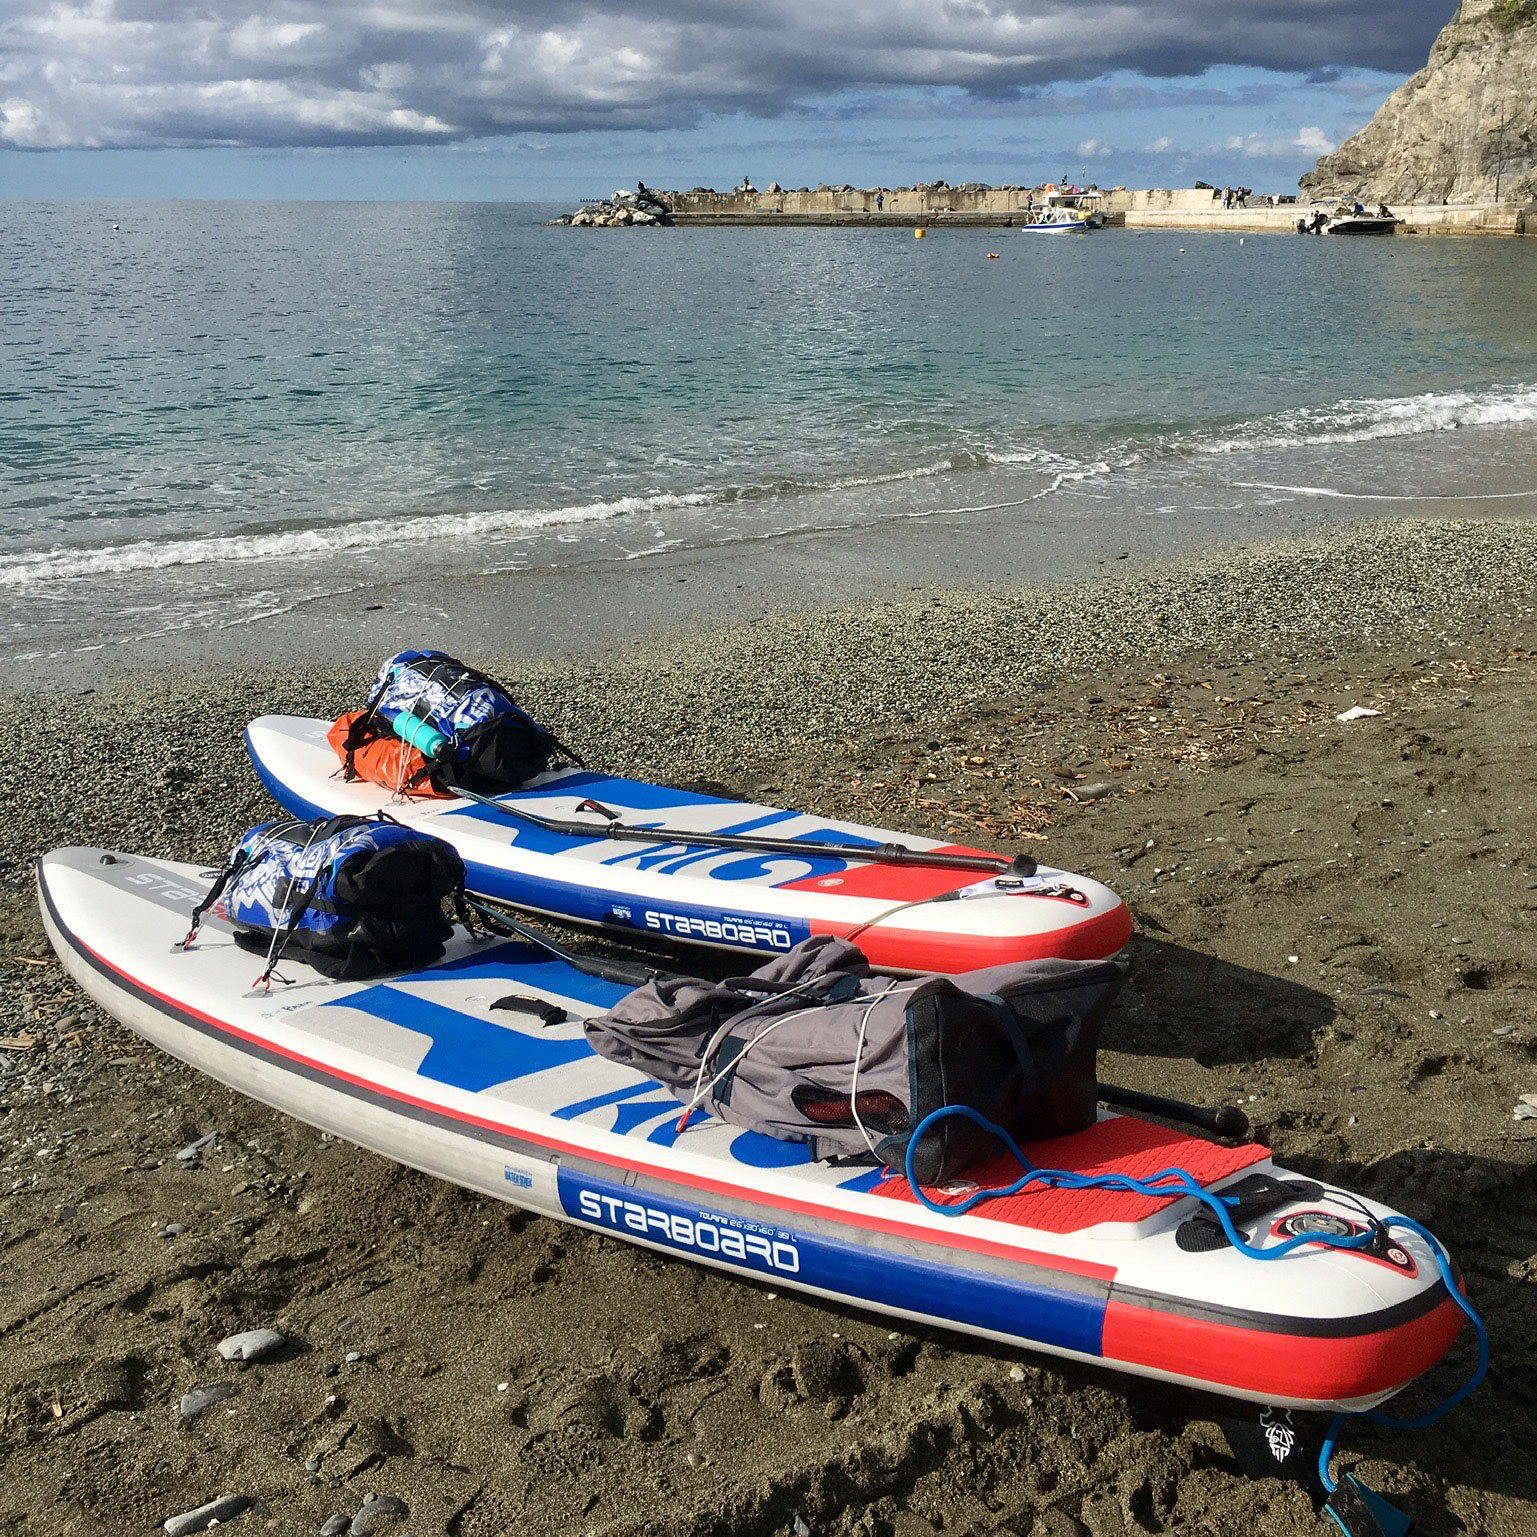 The-Three-Day-Effect-in-Italy-with-Linzi-Hawkin-Cinque-Terre-Stand-Up-Paddleboarding-adventure-12-6-touring-Zen-inflatables